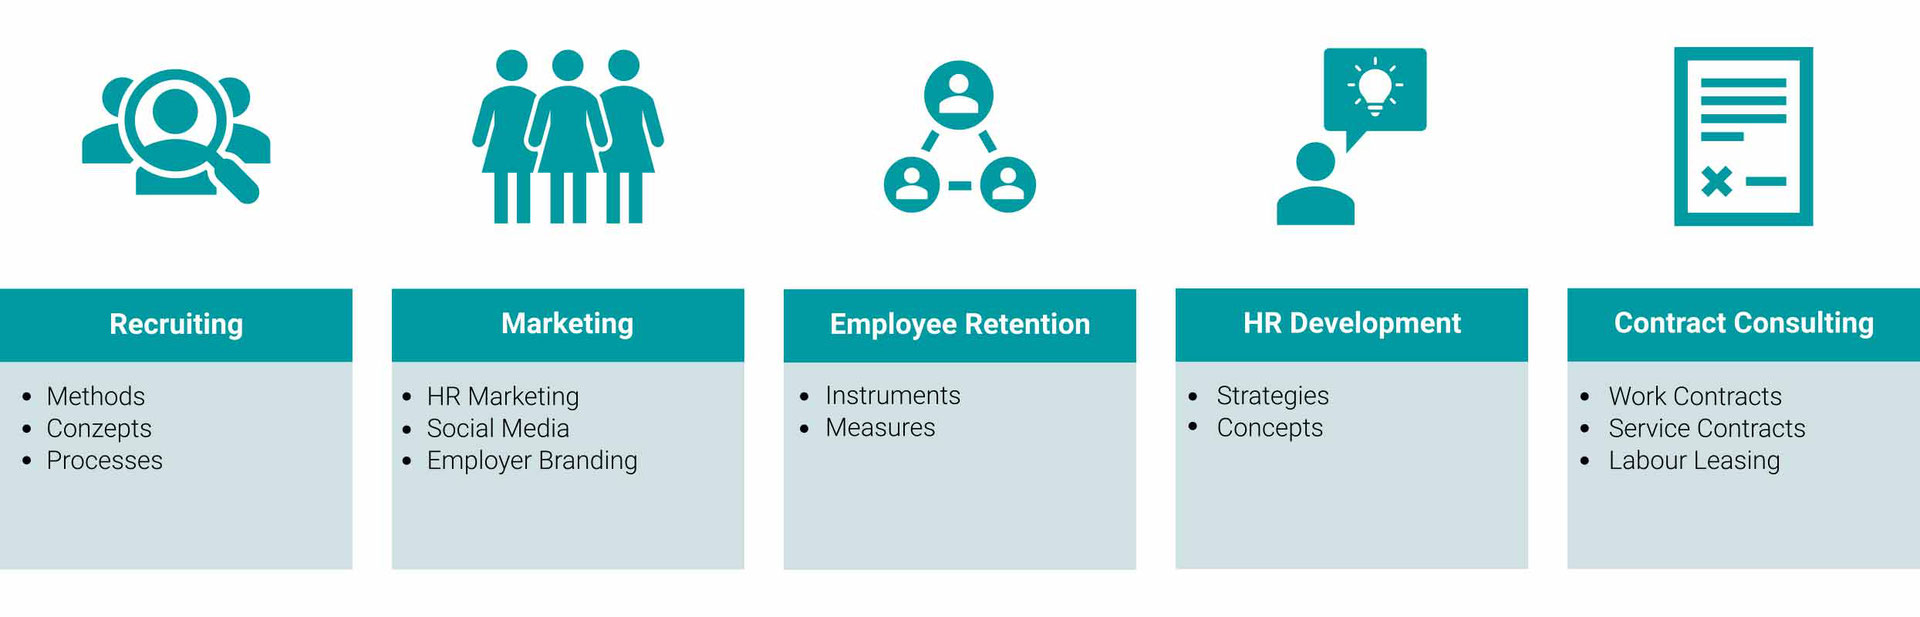 paXos HR Consulting Sectors: Recruiting, Marketing, Employee Retention, HR Development and Contract Consulting